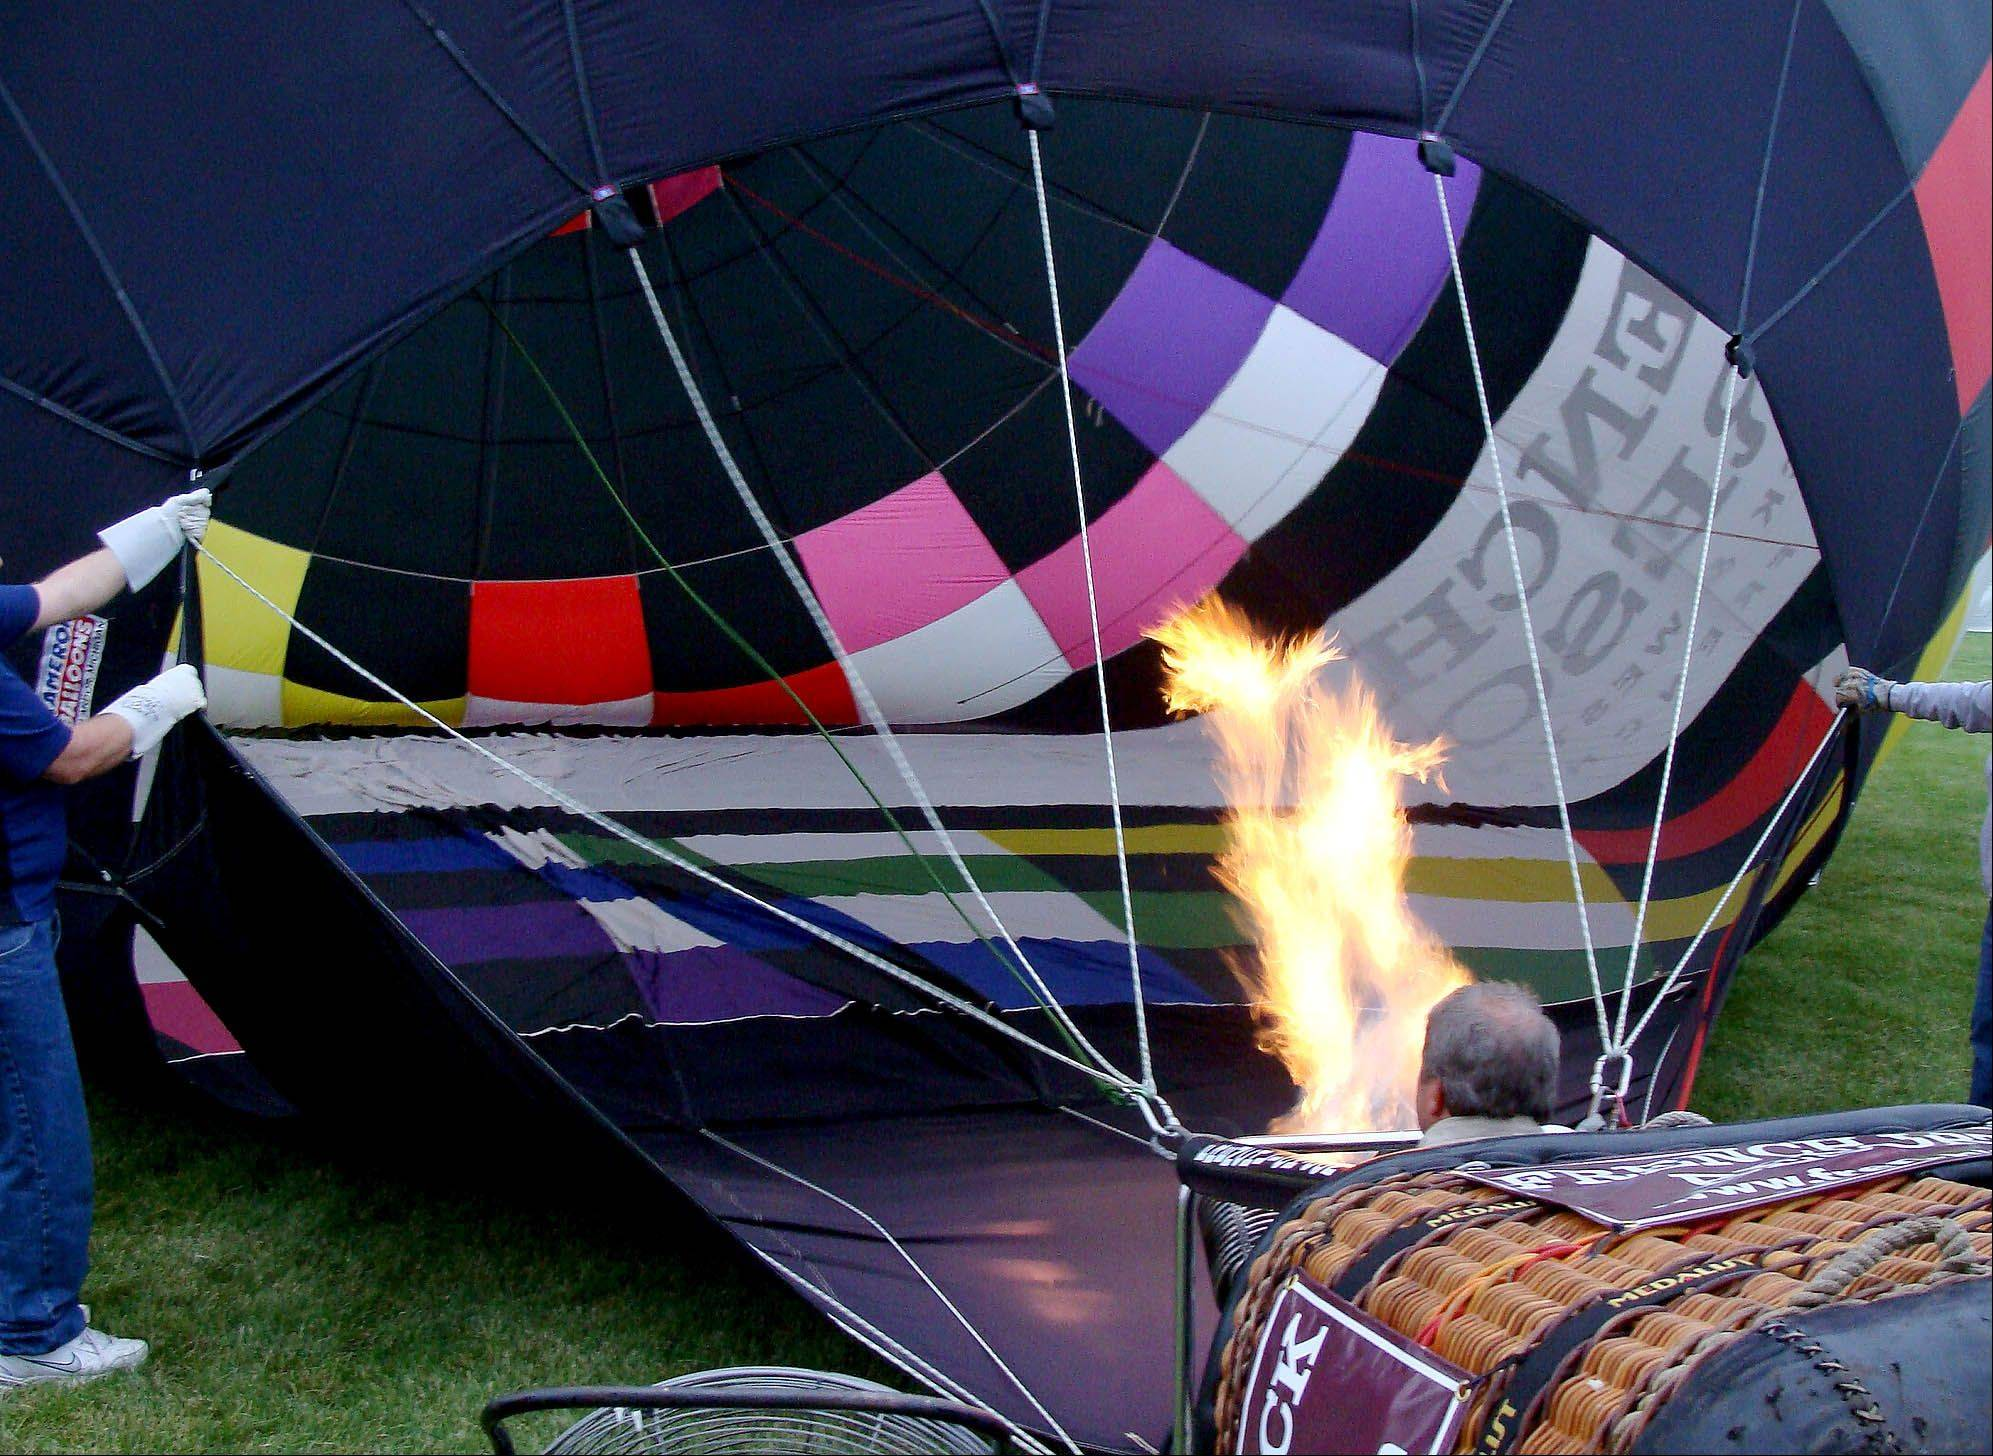 Jerry Copas inflates his balloon from inside the basket Wednesday. His balloon, advertising French Lick Resort in Indiana, is one of more than 20 featured at the festival.